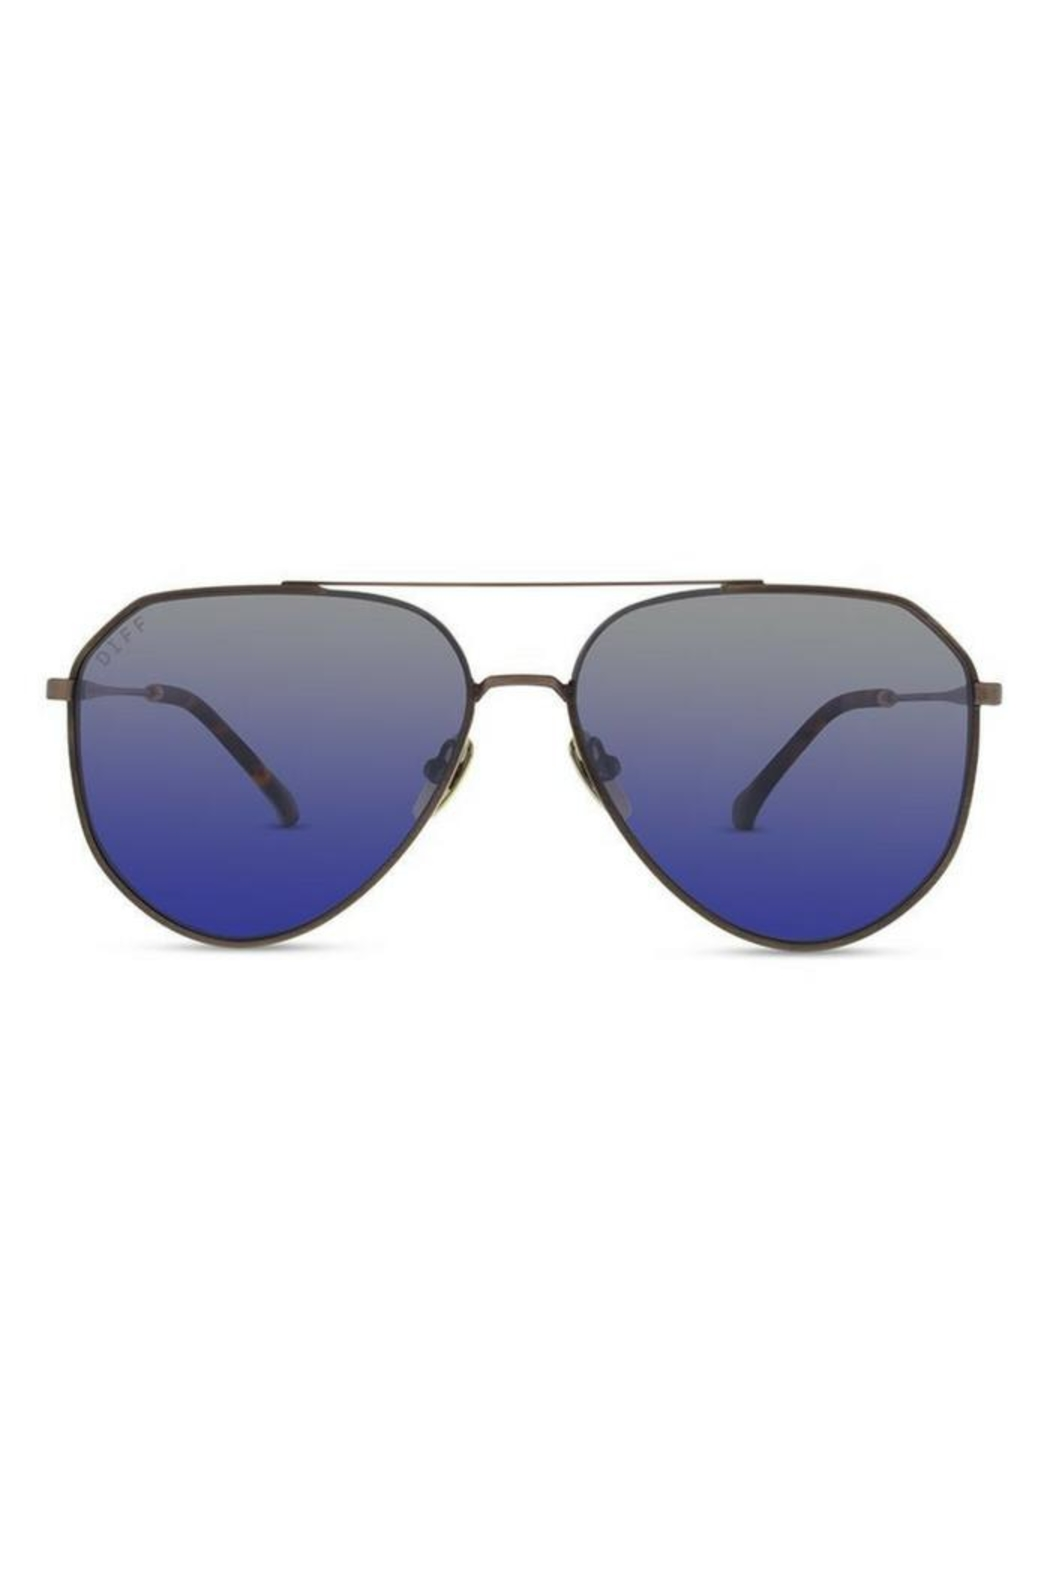 bff0fd428a Diff Eyewear Dash Aviator Sunglasses from Wallingford by The ...